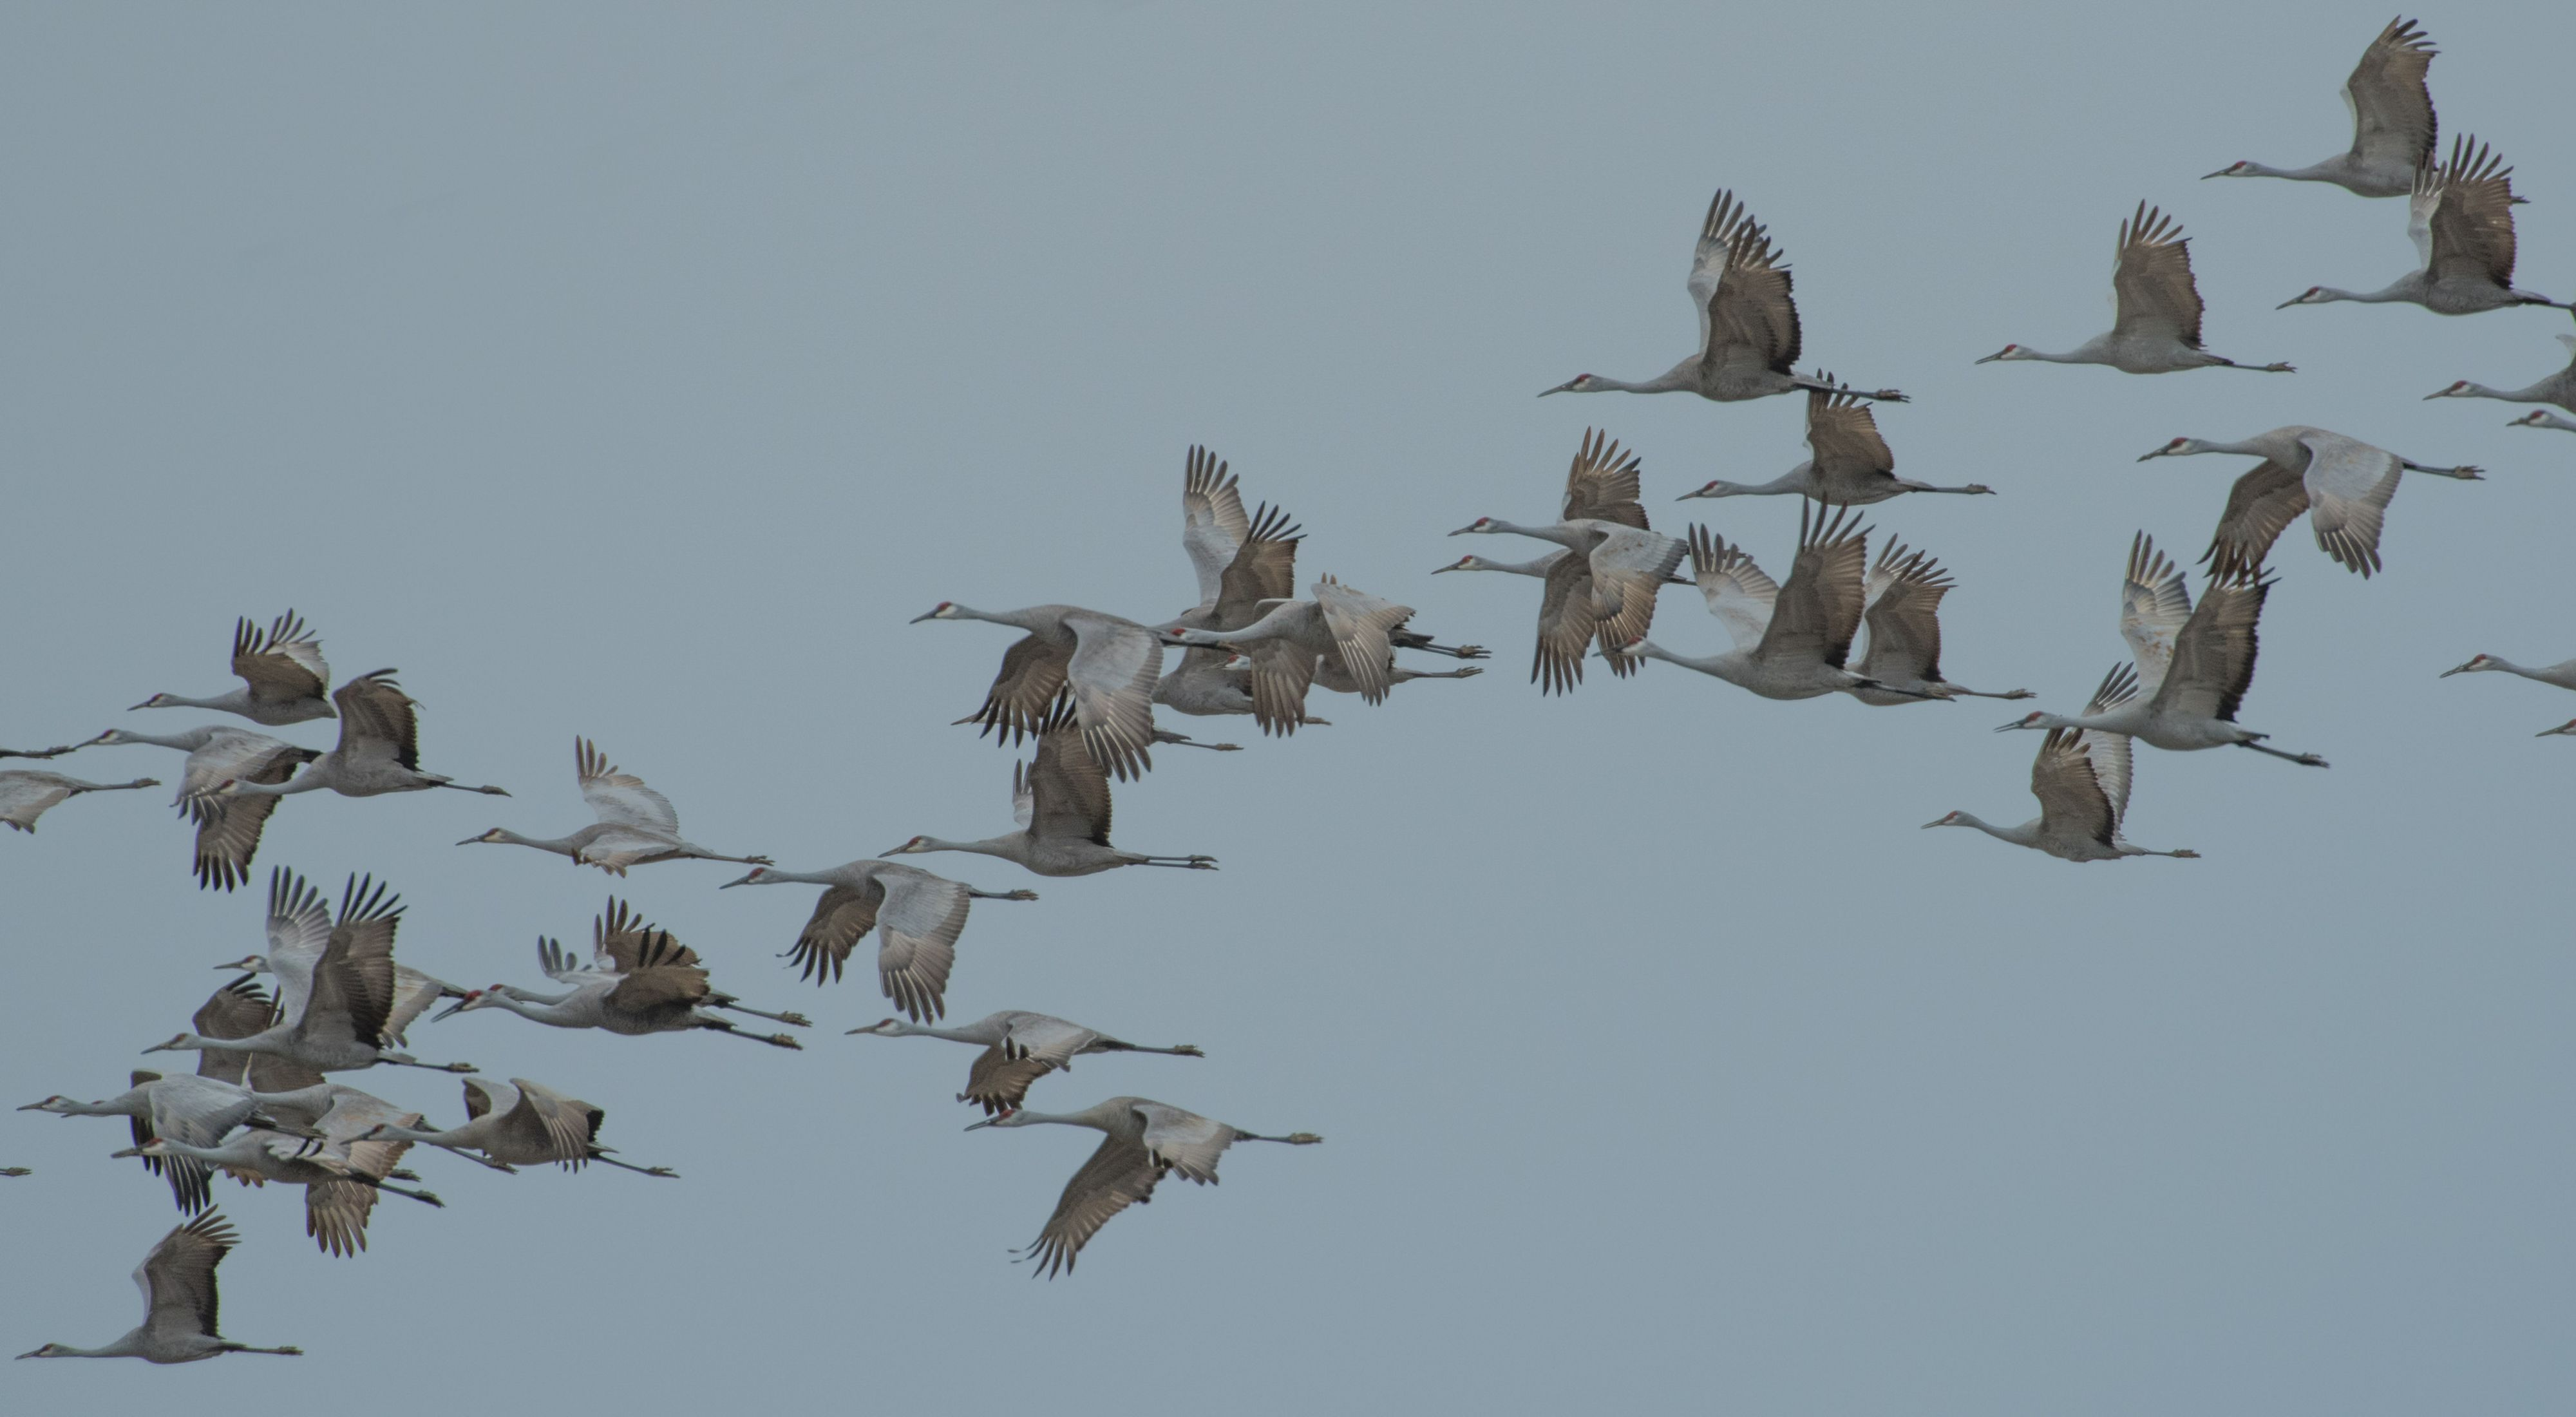 A flock of large gray cranes in flight.